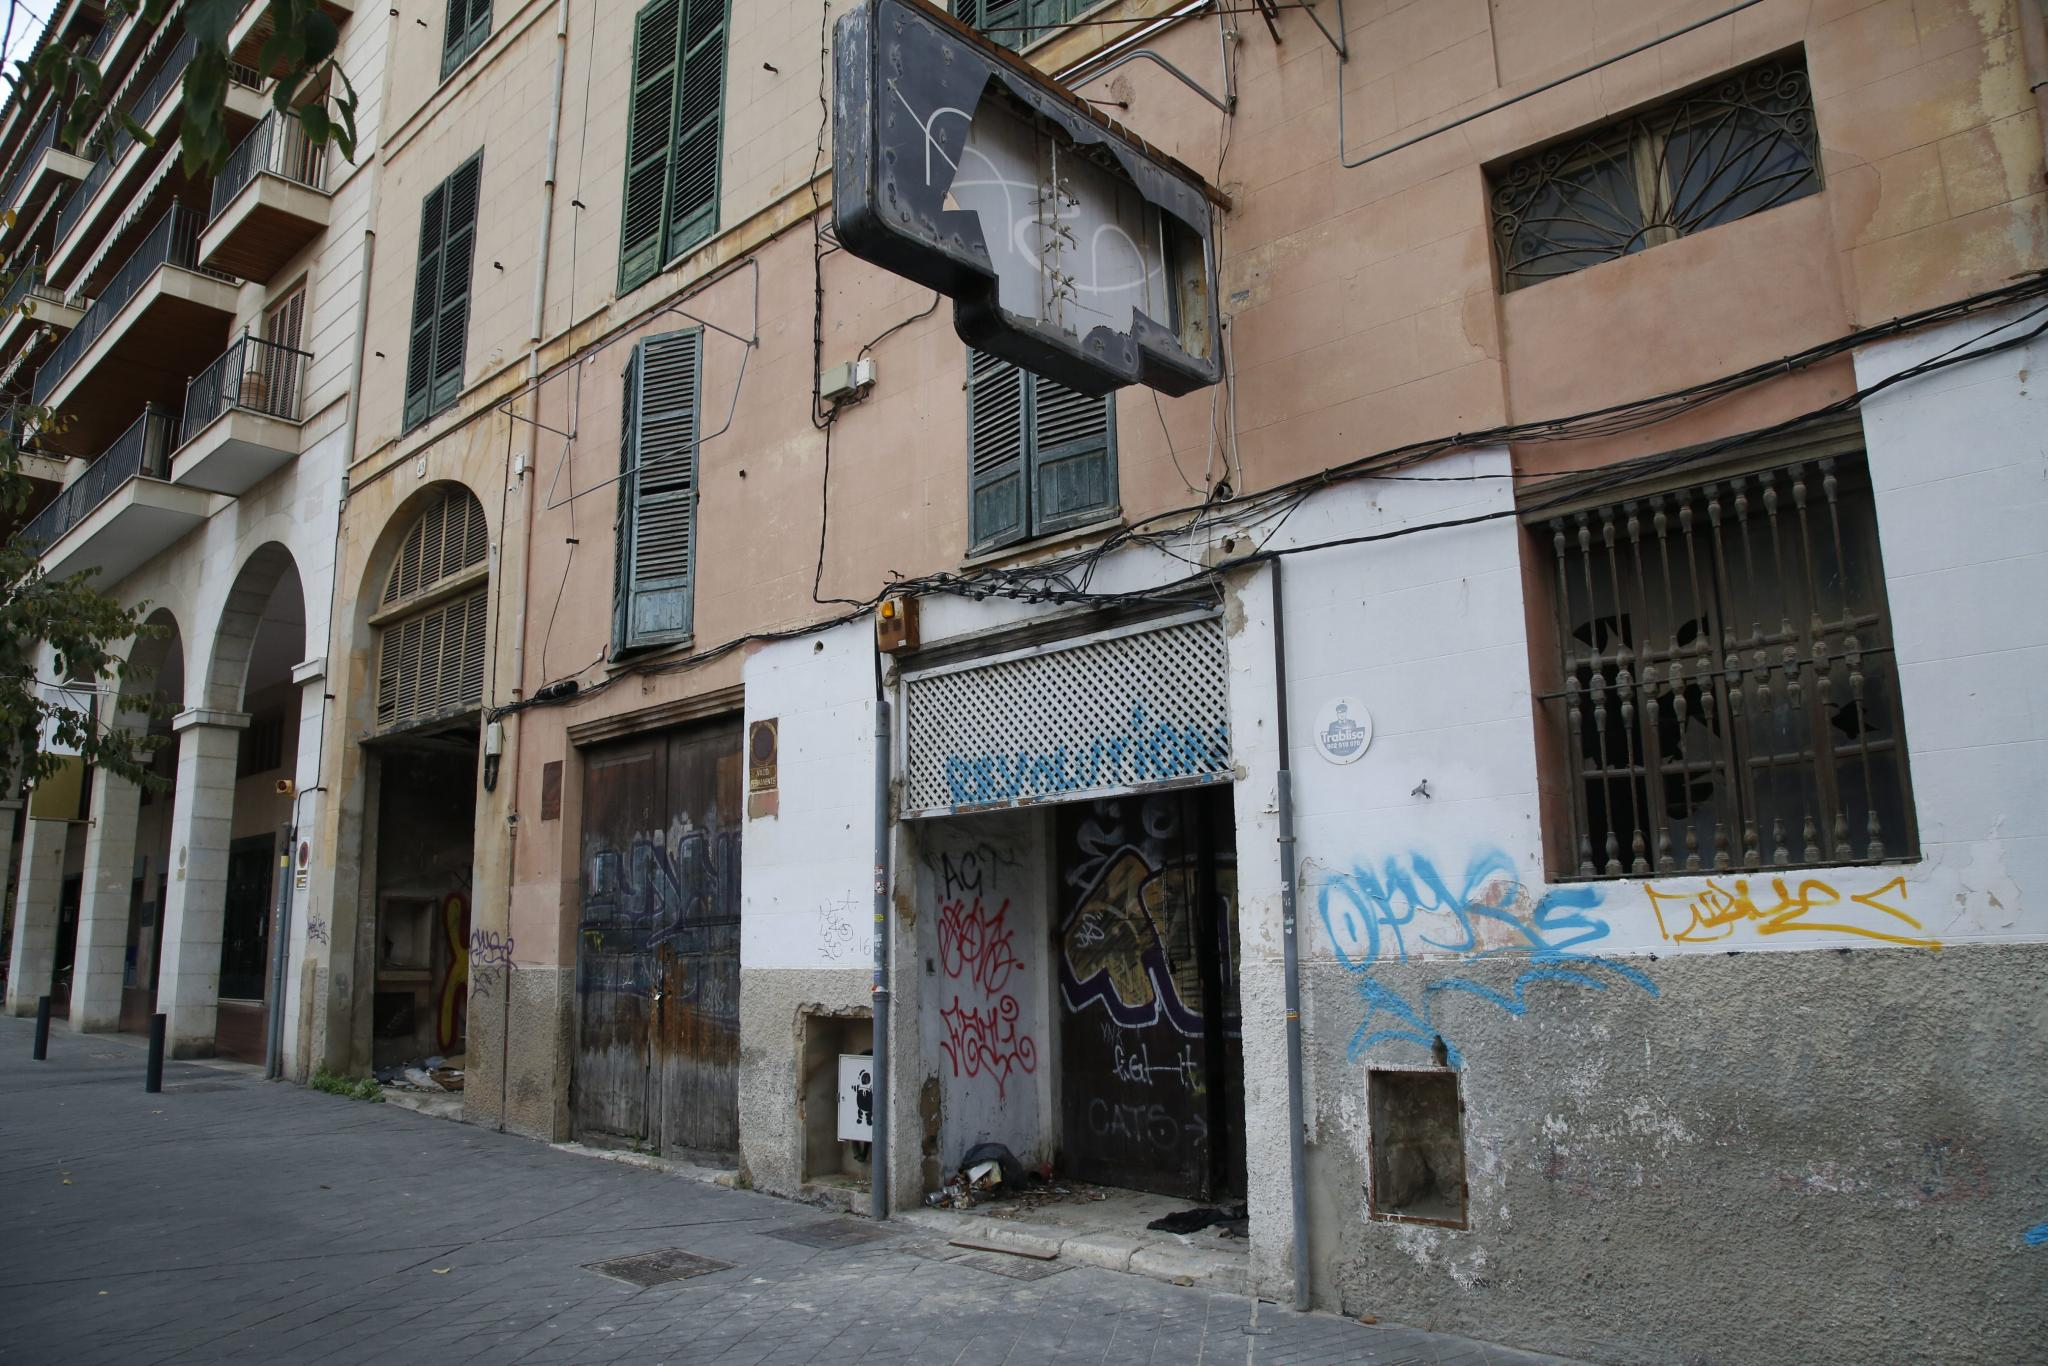 The old Asai nightclub in Palma has been empty for a long time